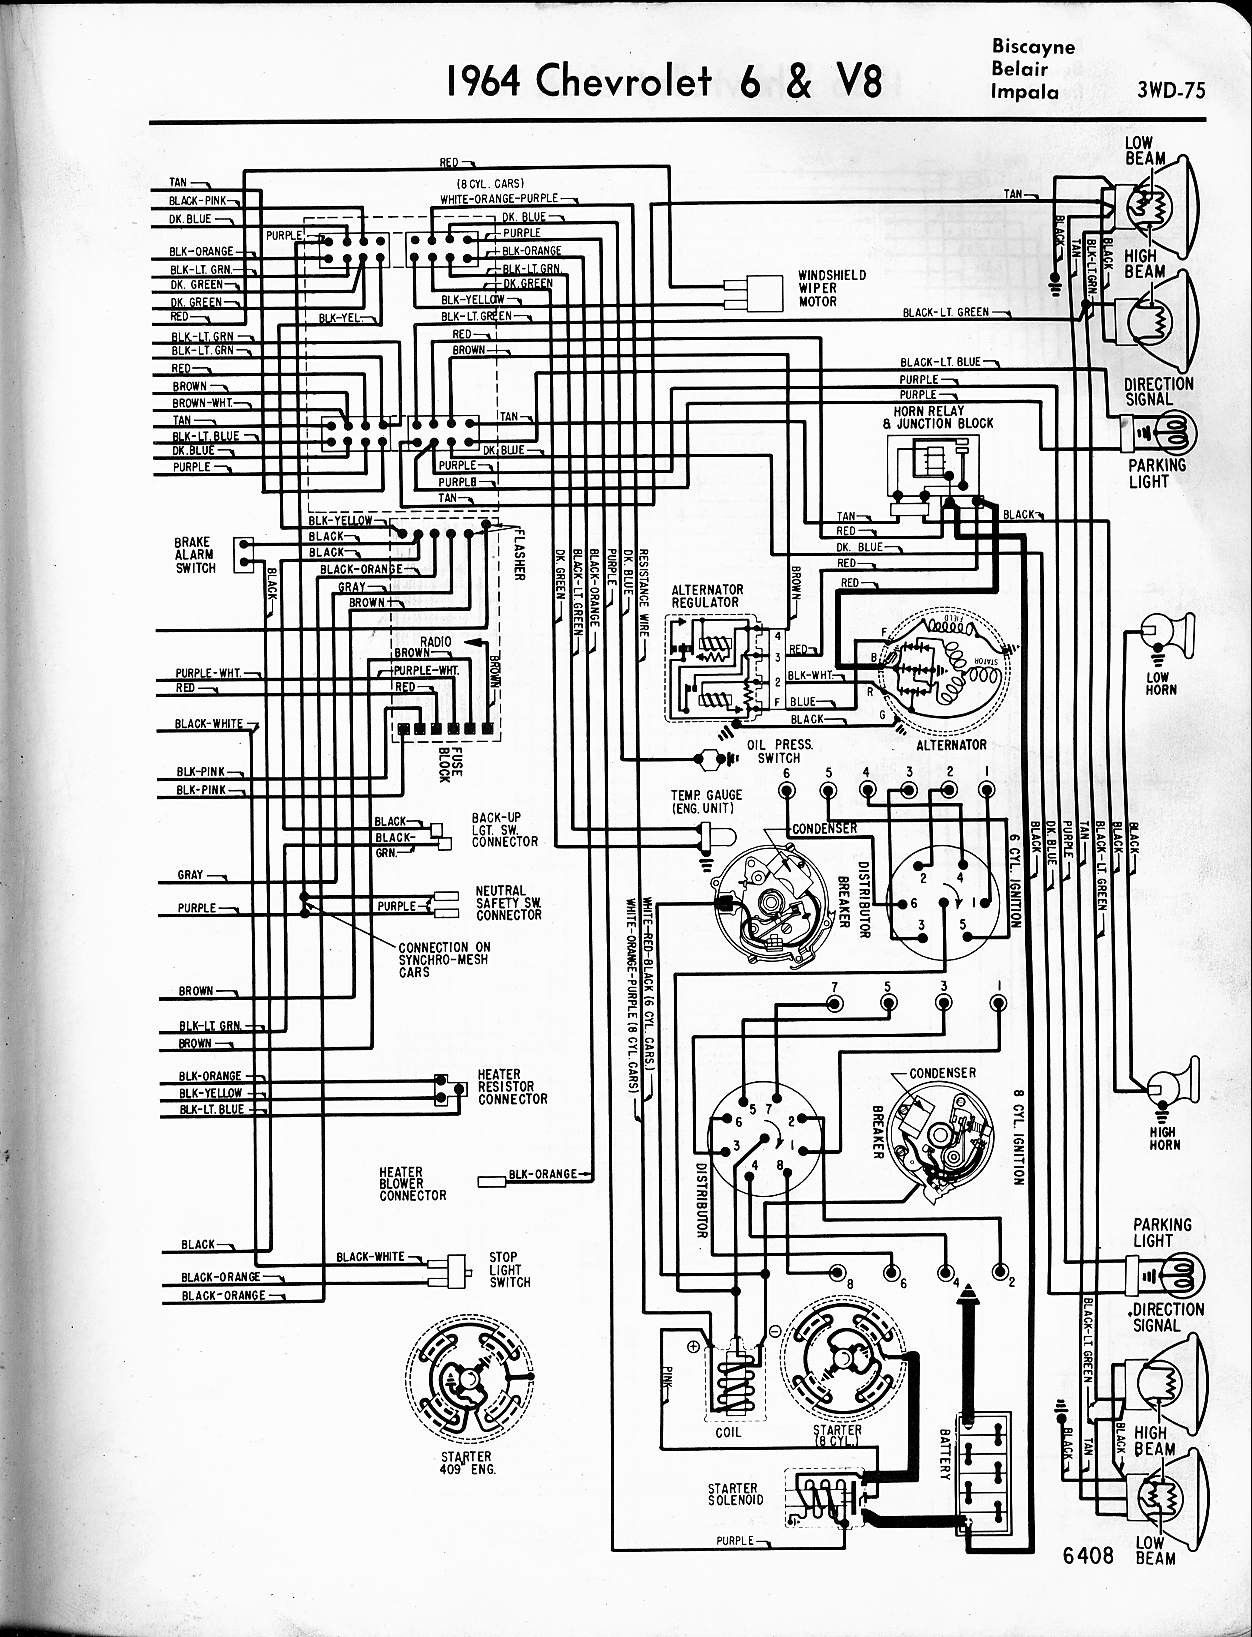 1964 Gmc Truck Electrical System Wiring Diagram Schematic Free Schematics Chevy Trucks 1963 Chevy Truck Electrical Diagram